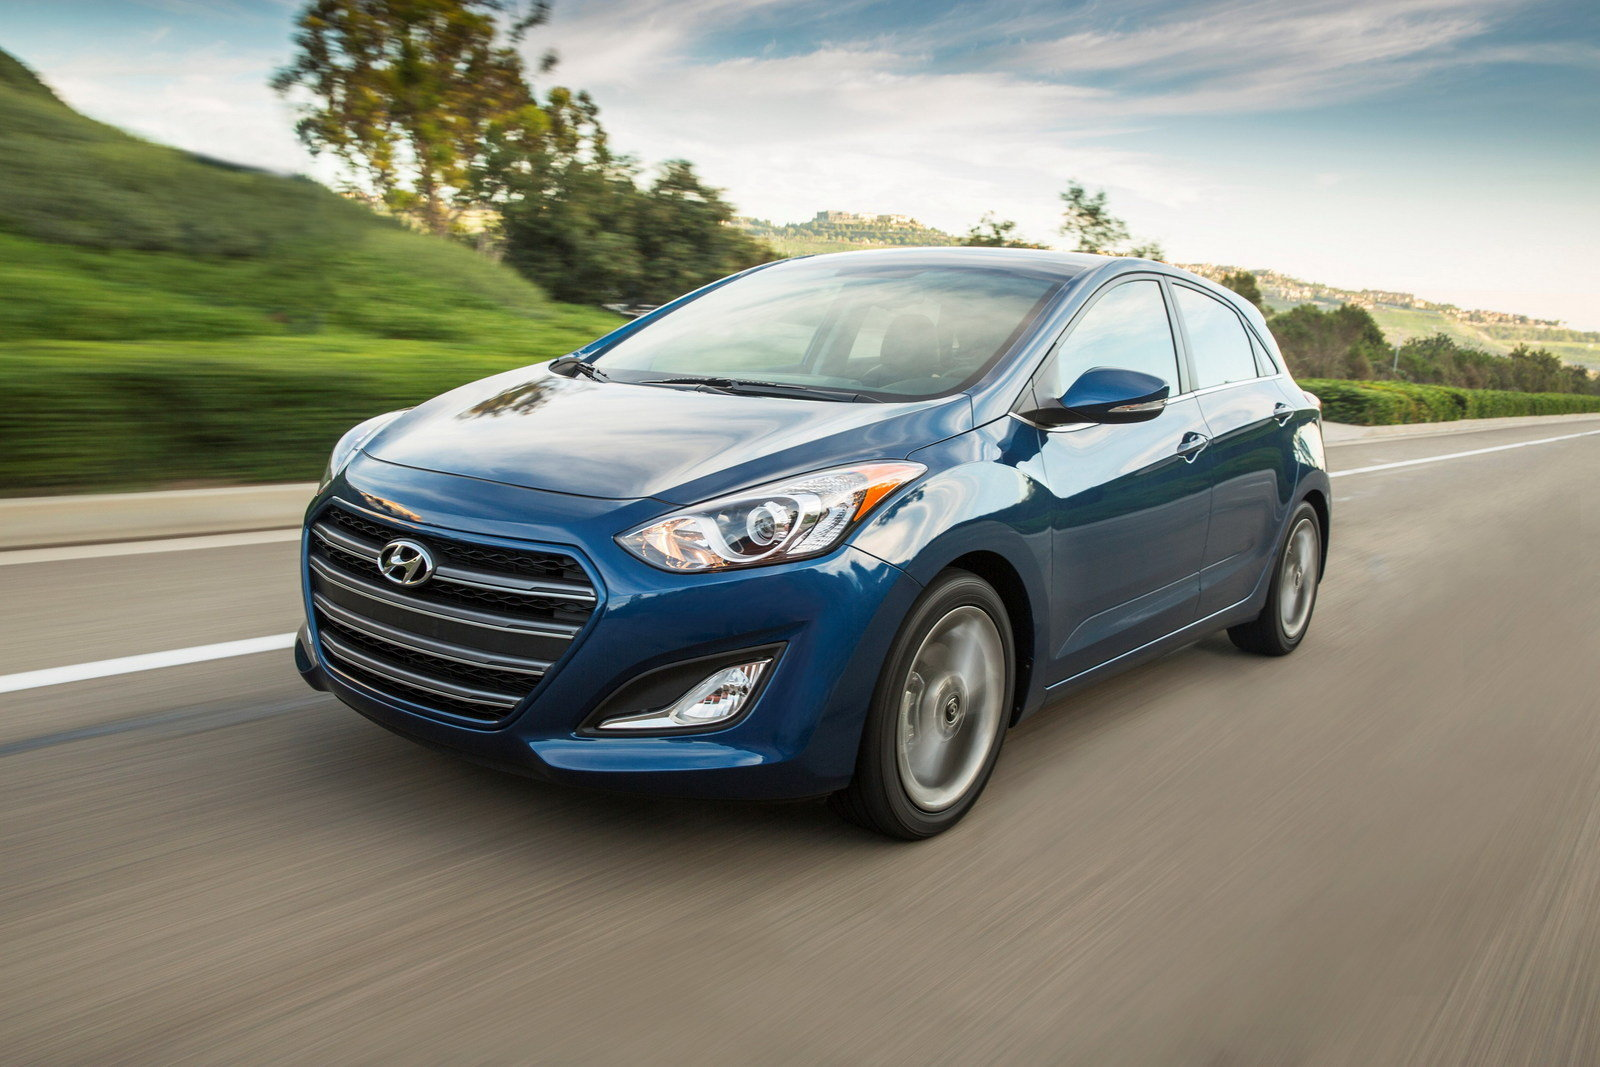 2016 hyundai elantra gt picture 617152 car review top speed. Black Bedroom Furniture Sets. Home Design Ideas